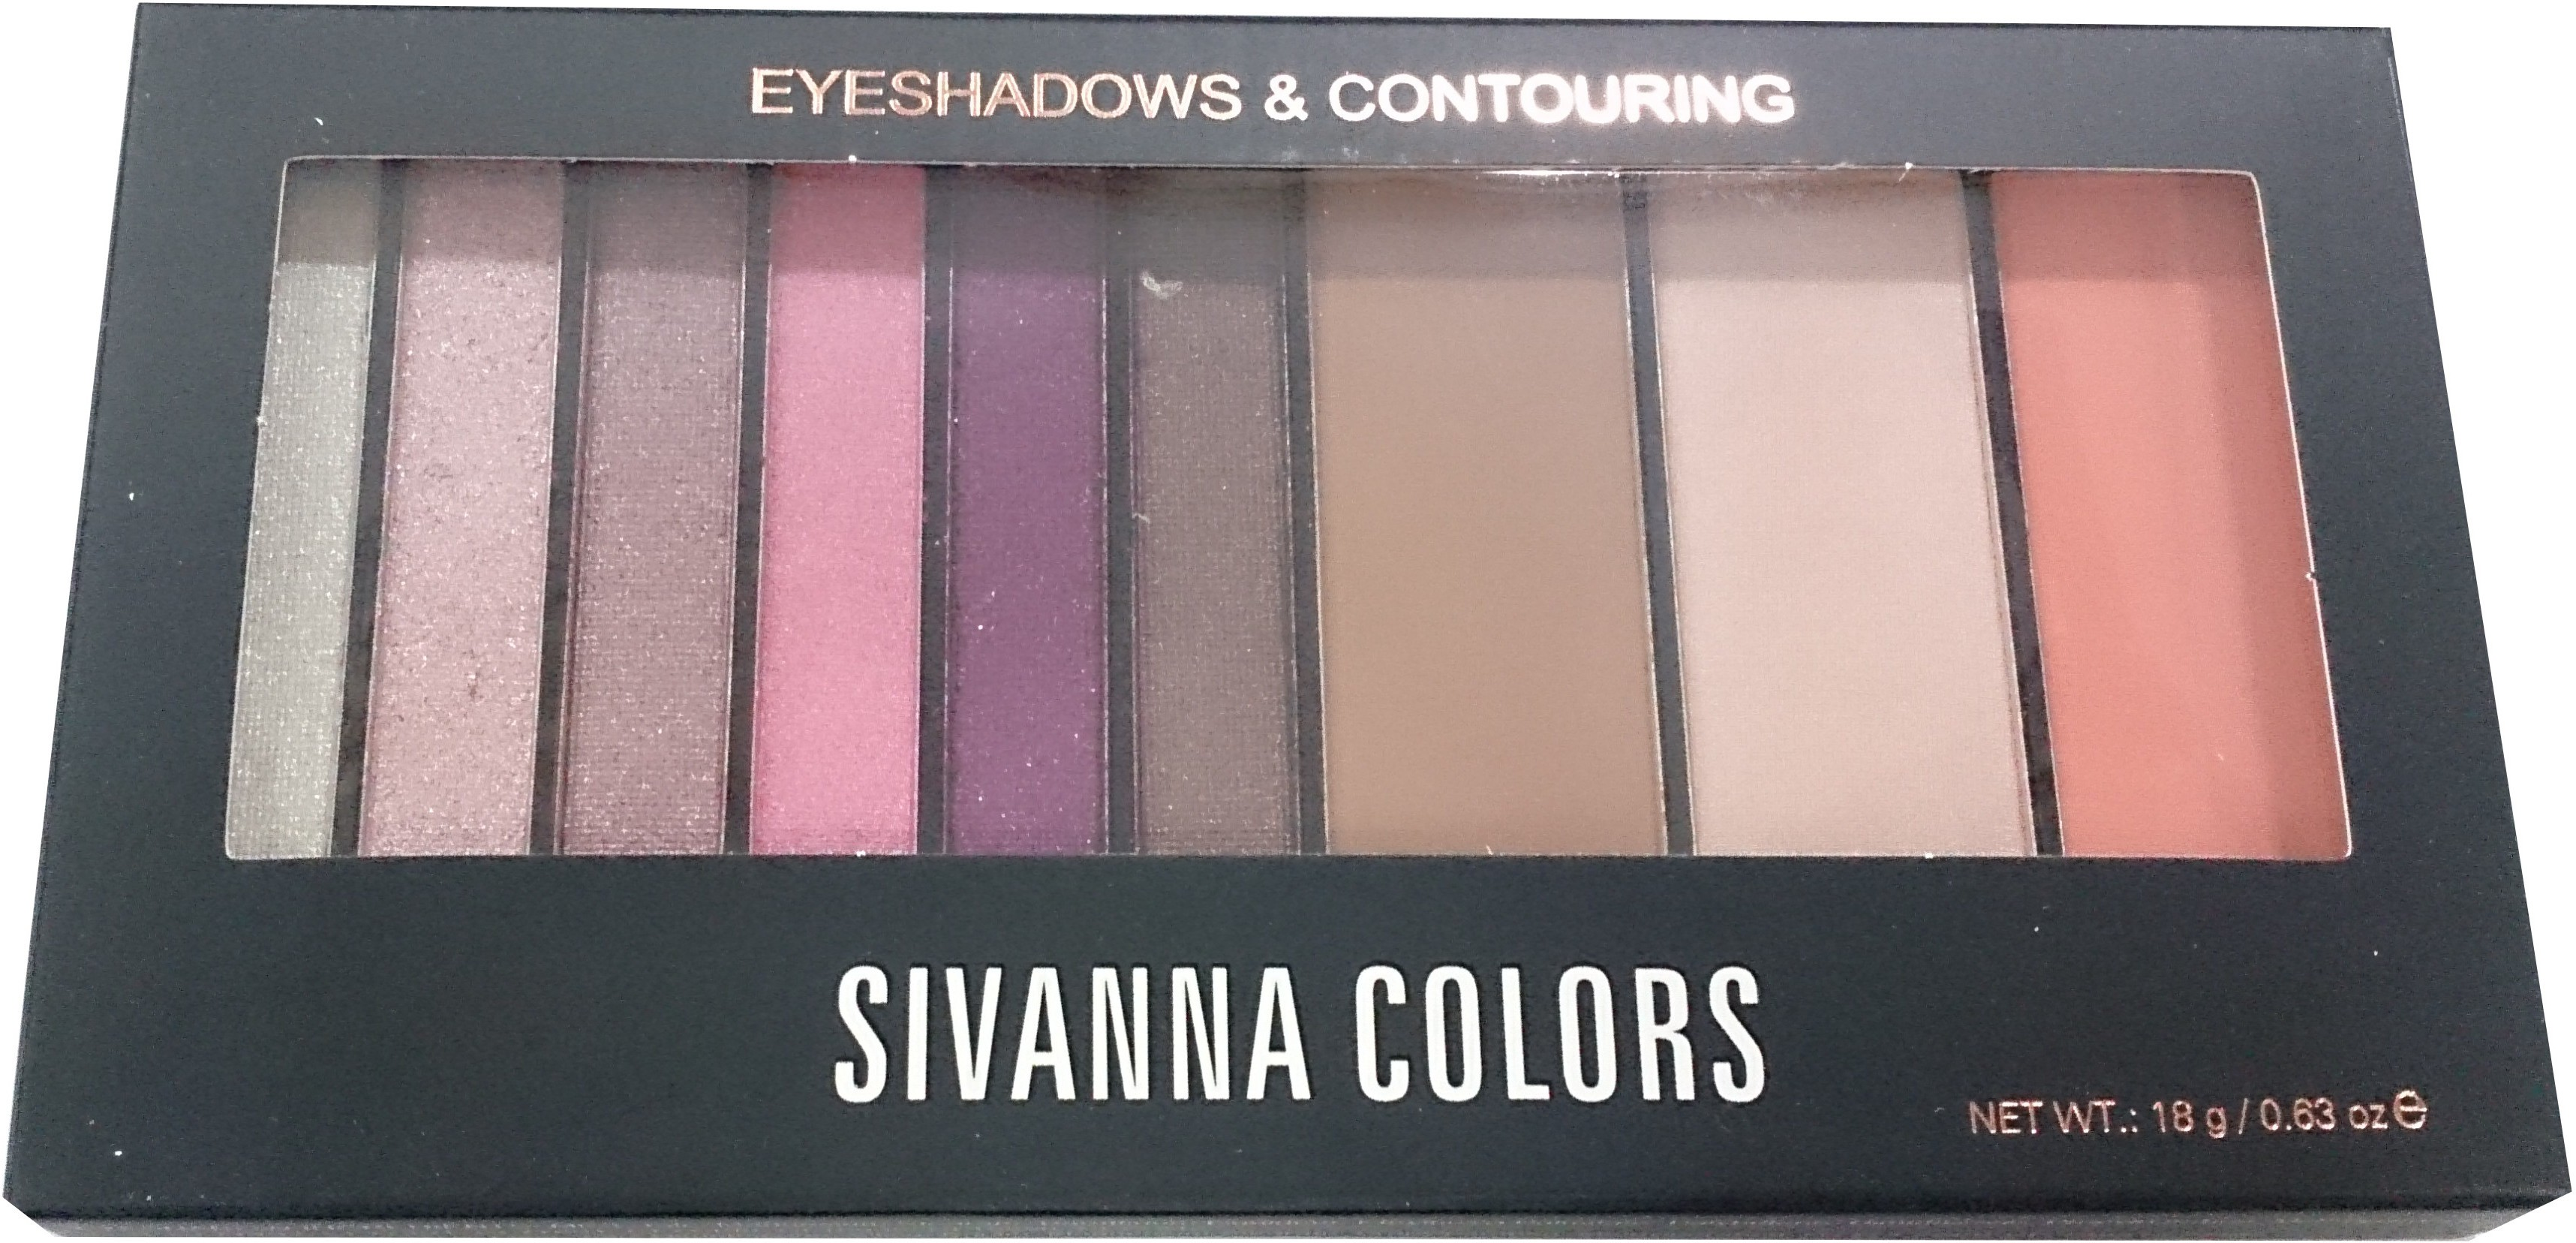 Sivanna Eyeshadows And Contouring 18 g(purple pink 04)